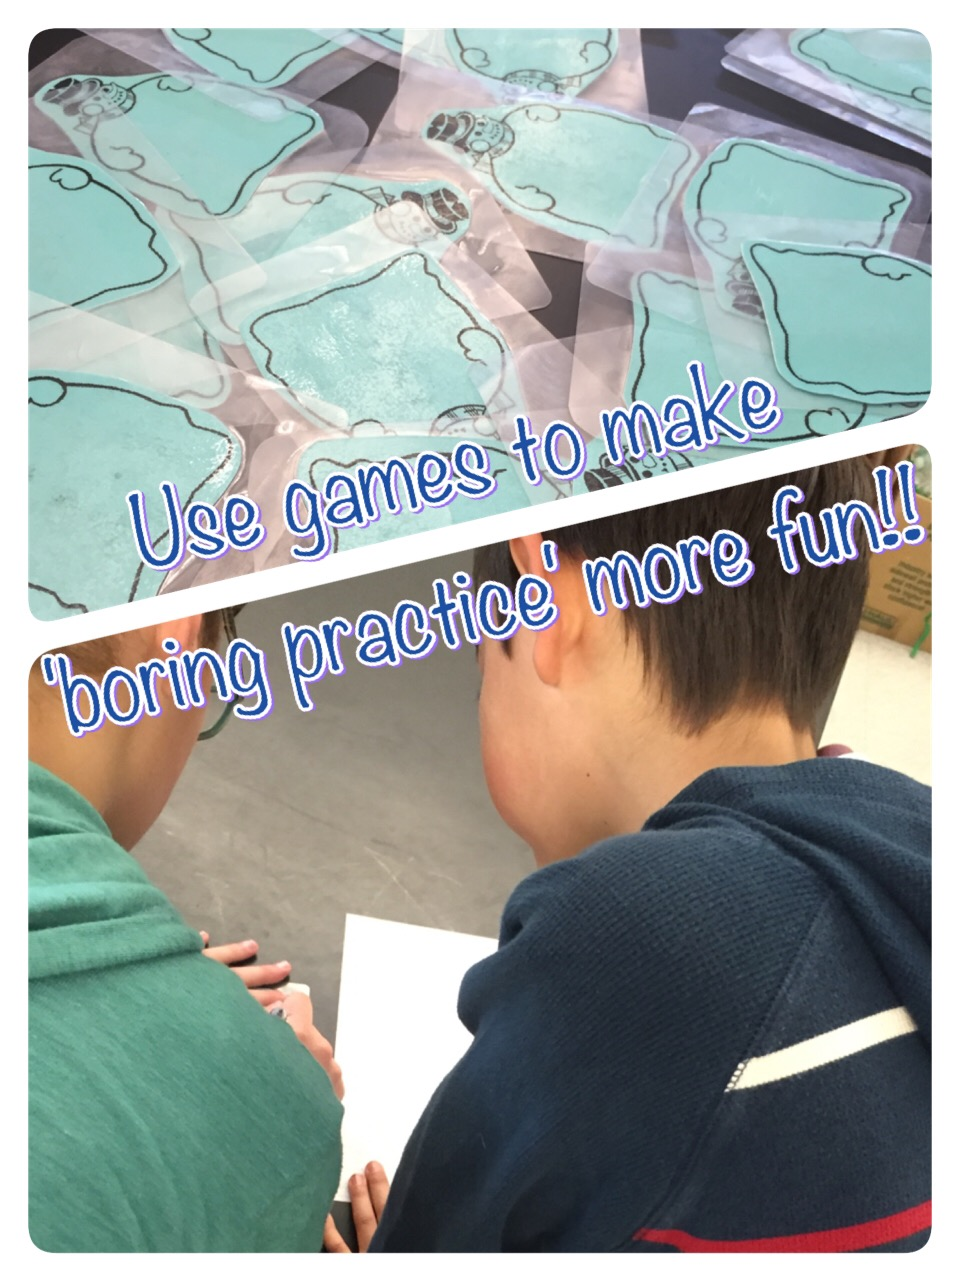 5 tips to make learning more fun! www.theardentteacher.com